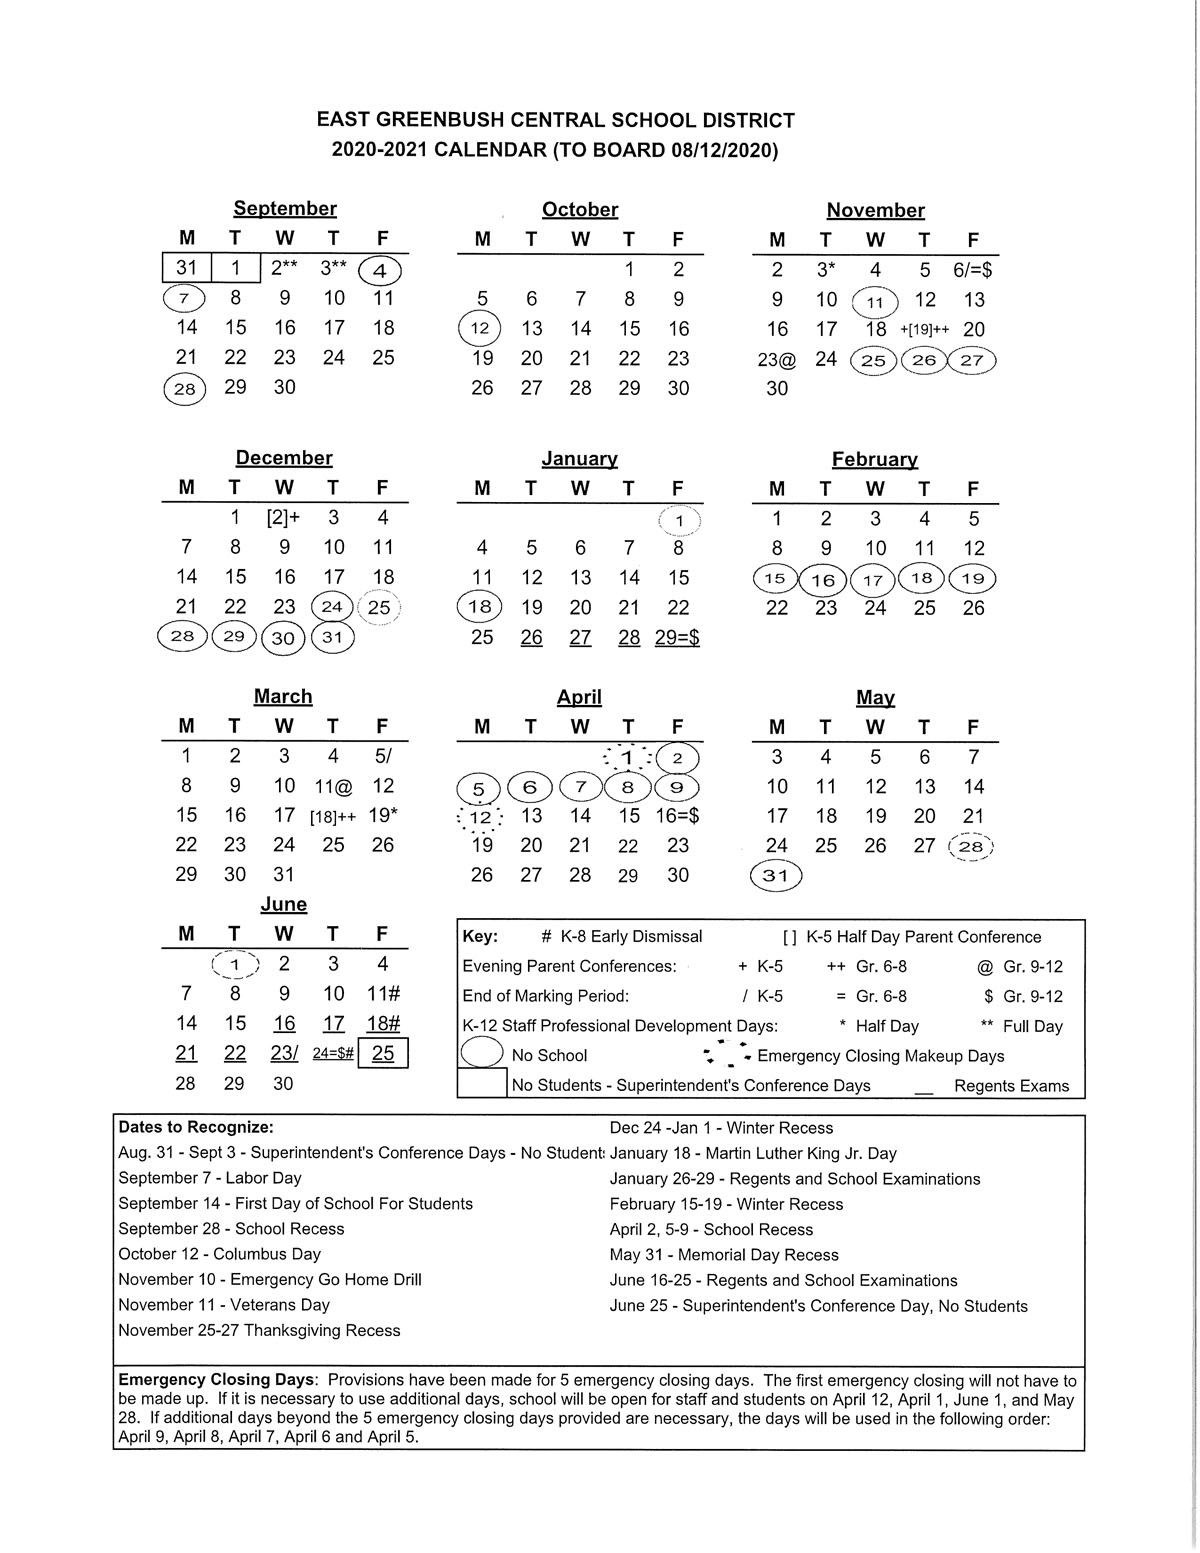 District Calendar 2020-21 Revised